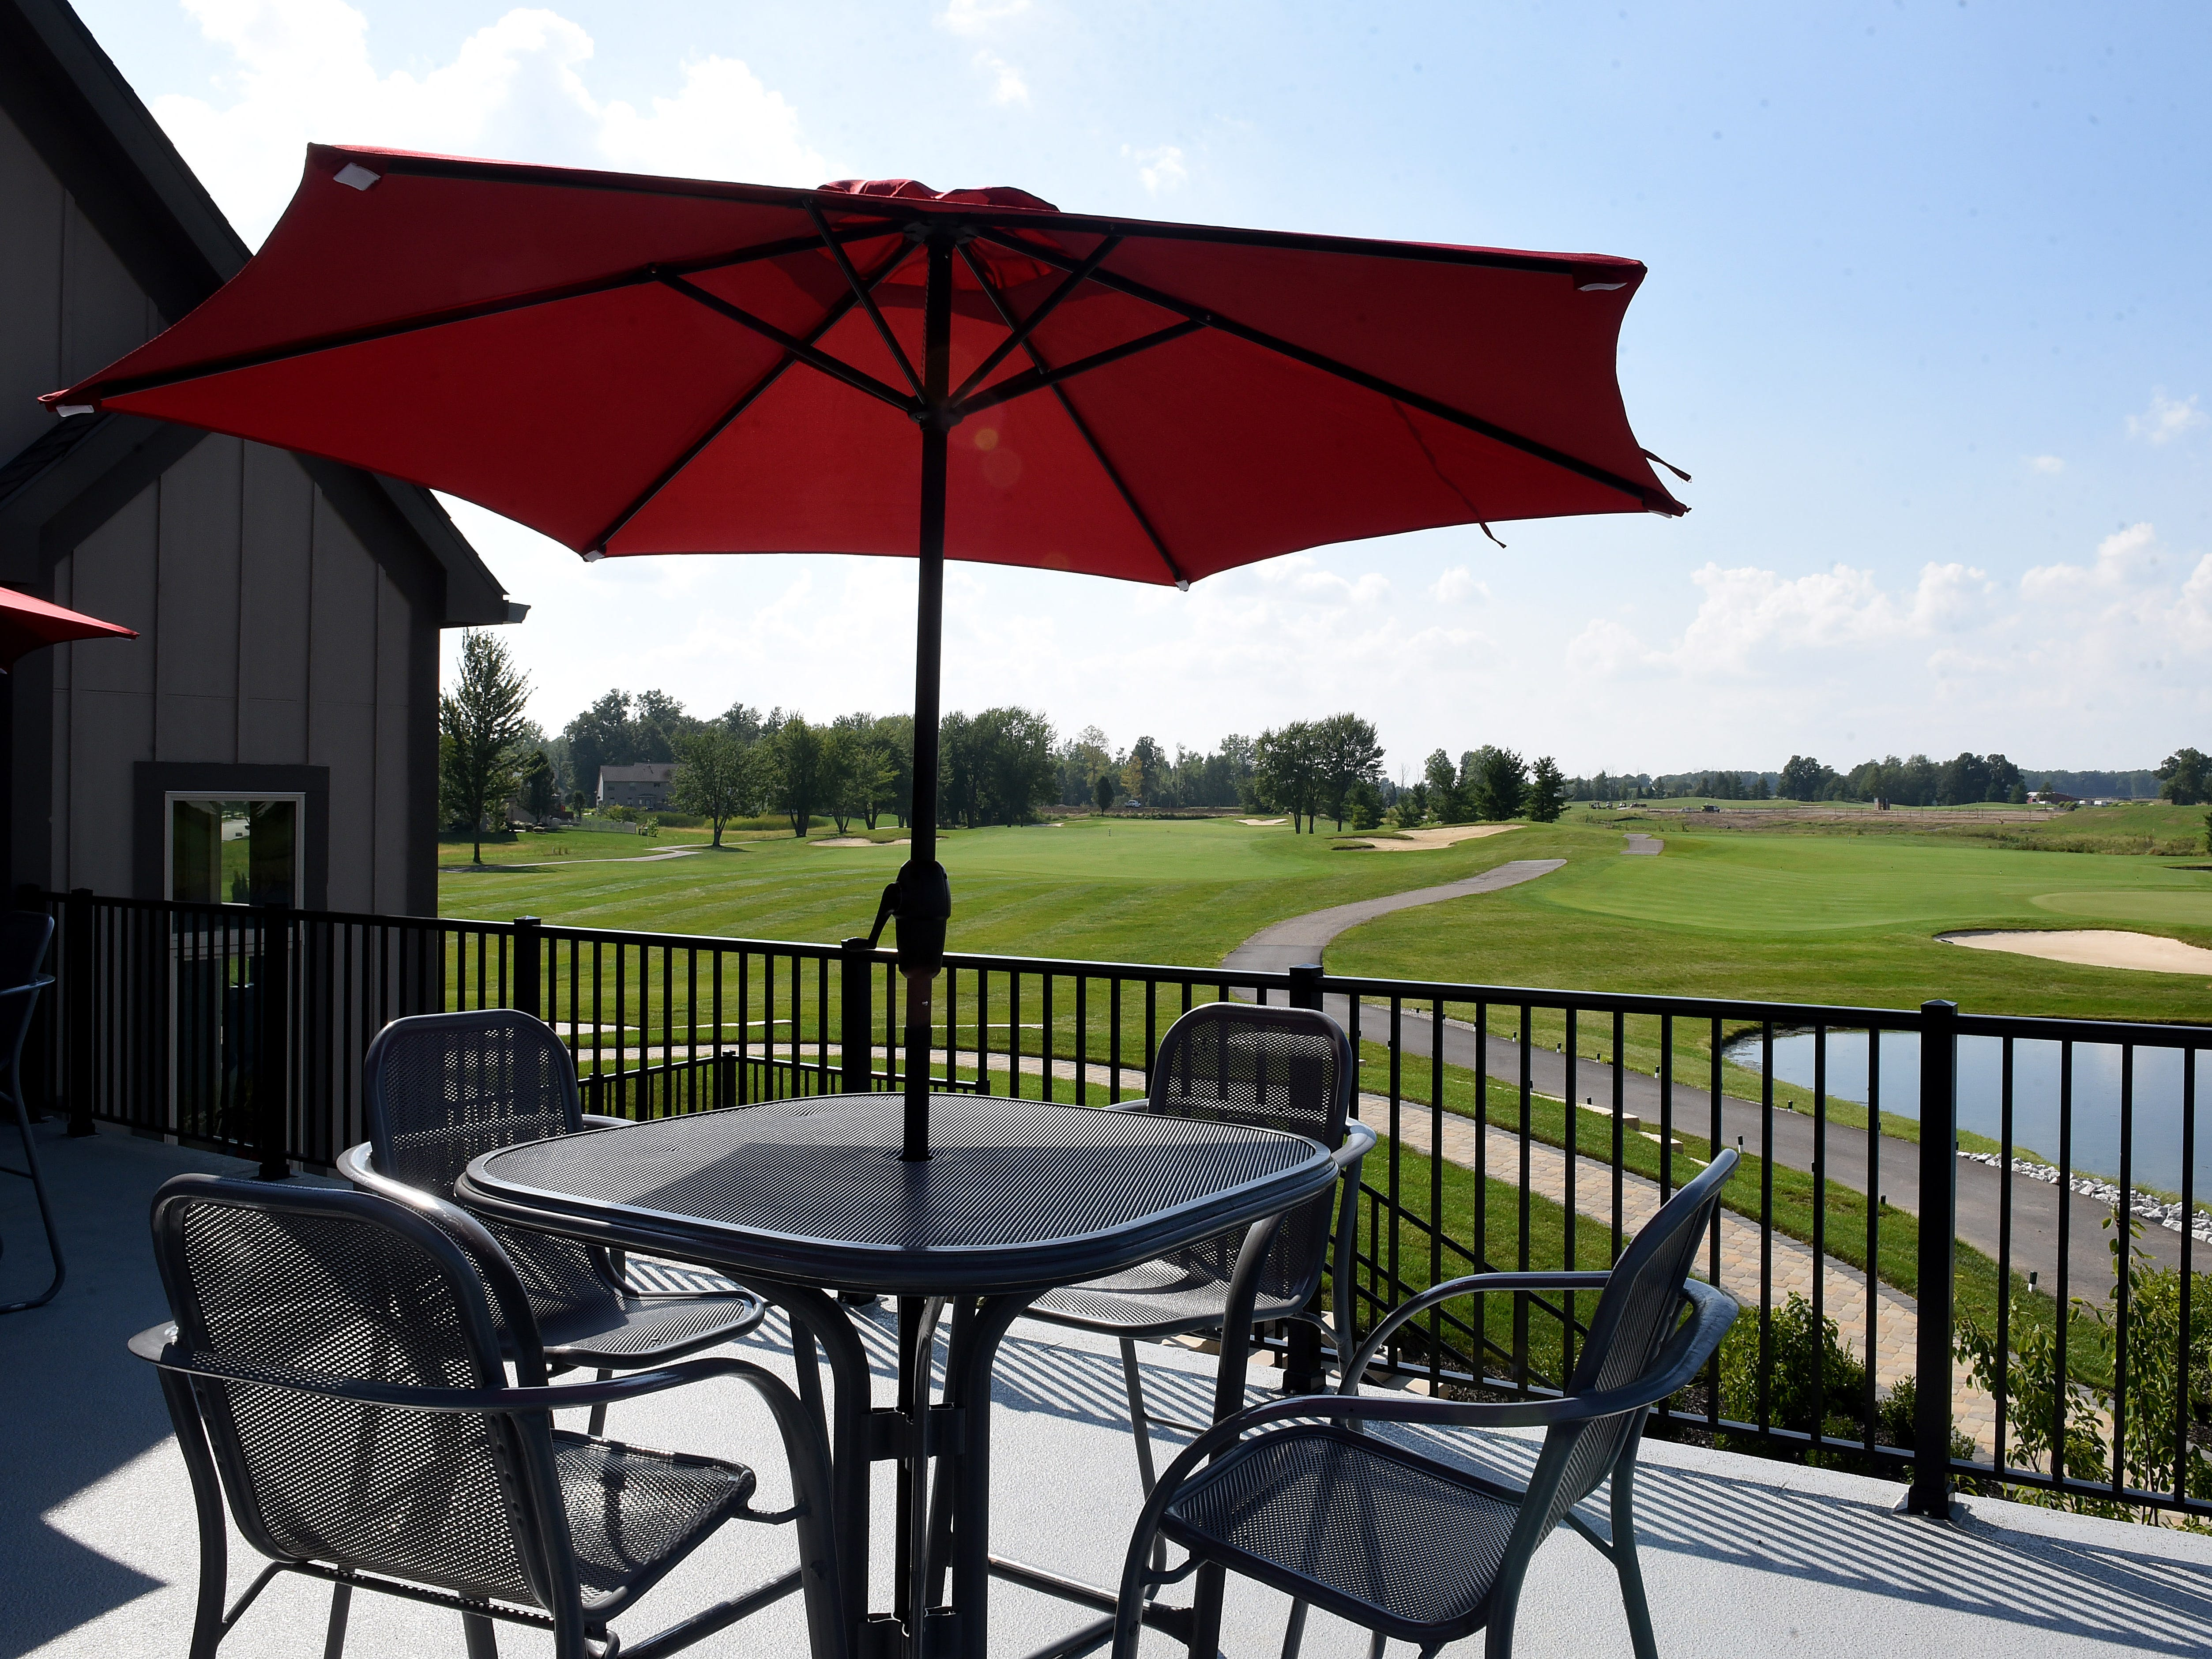 Patio overlooking the links at The Loft at Cumberland. The Pataskala restaurant is part of Cumberland Trail Golf Club.